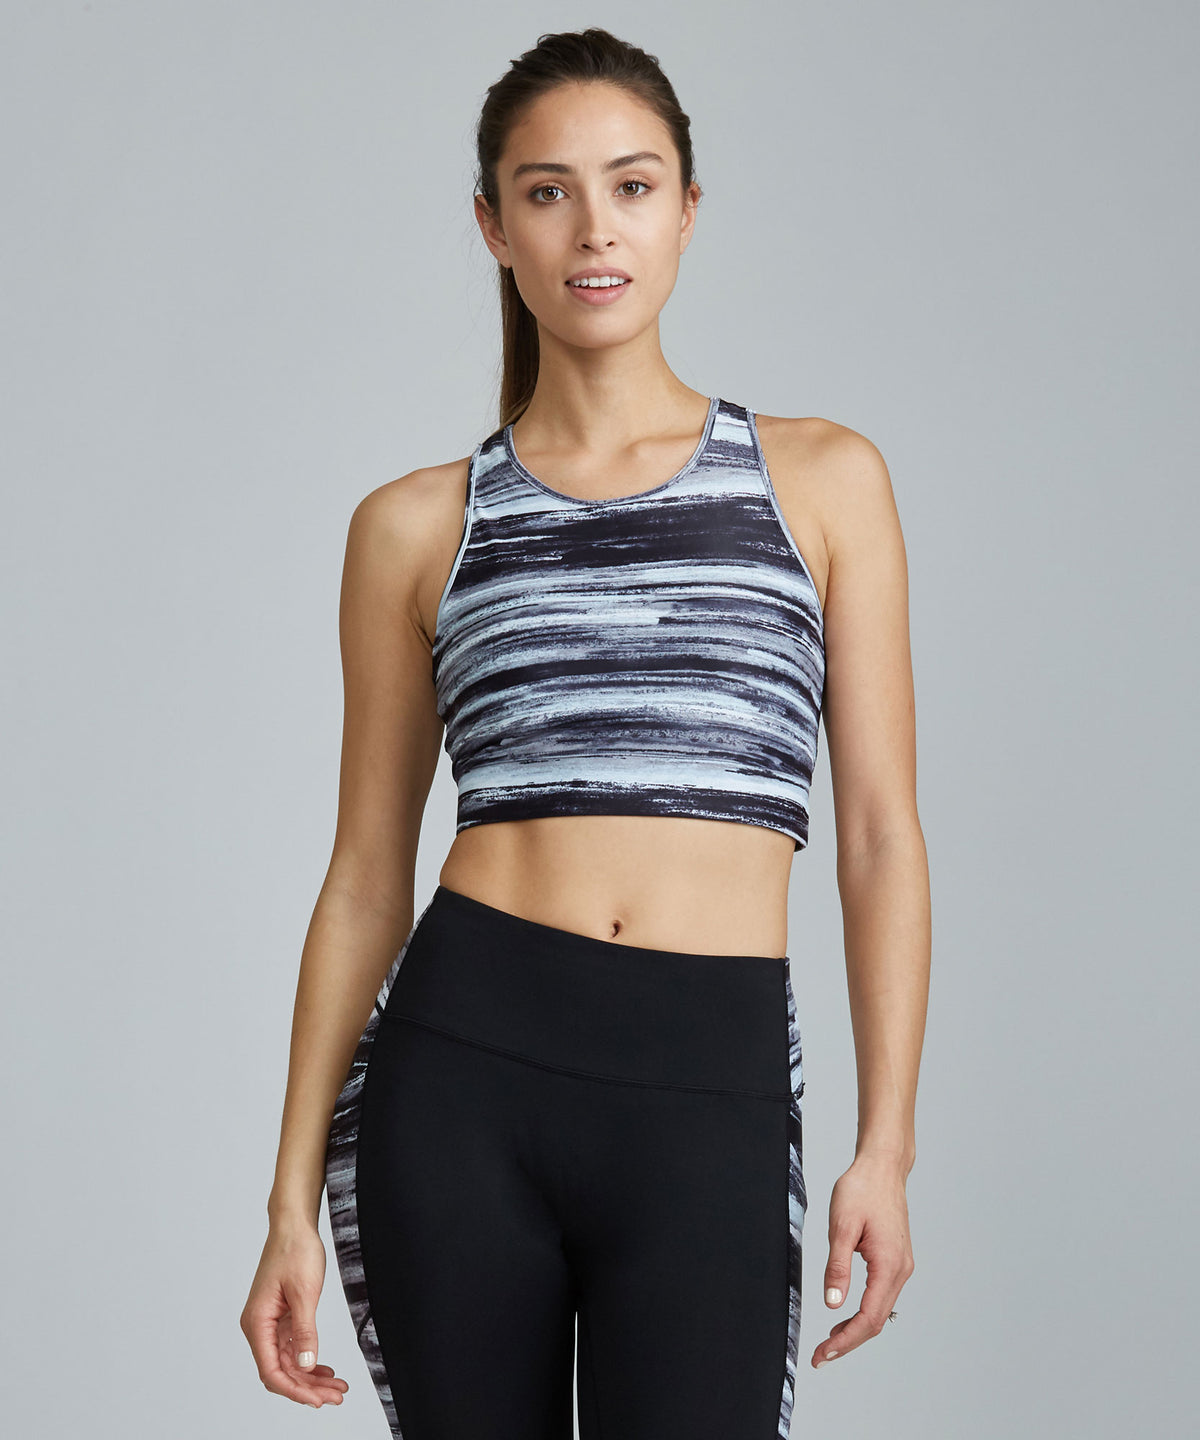 Crop Bra Top - Evening Evening Crop Bra Top - Women's Sports Bra by PRISMSPORT